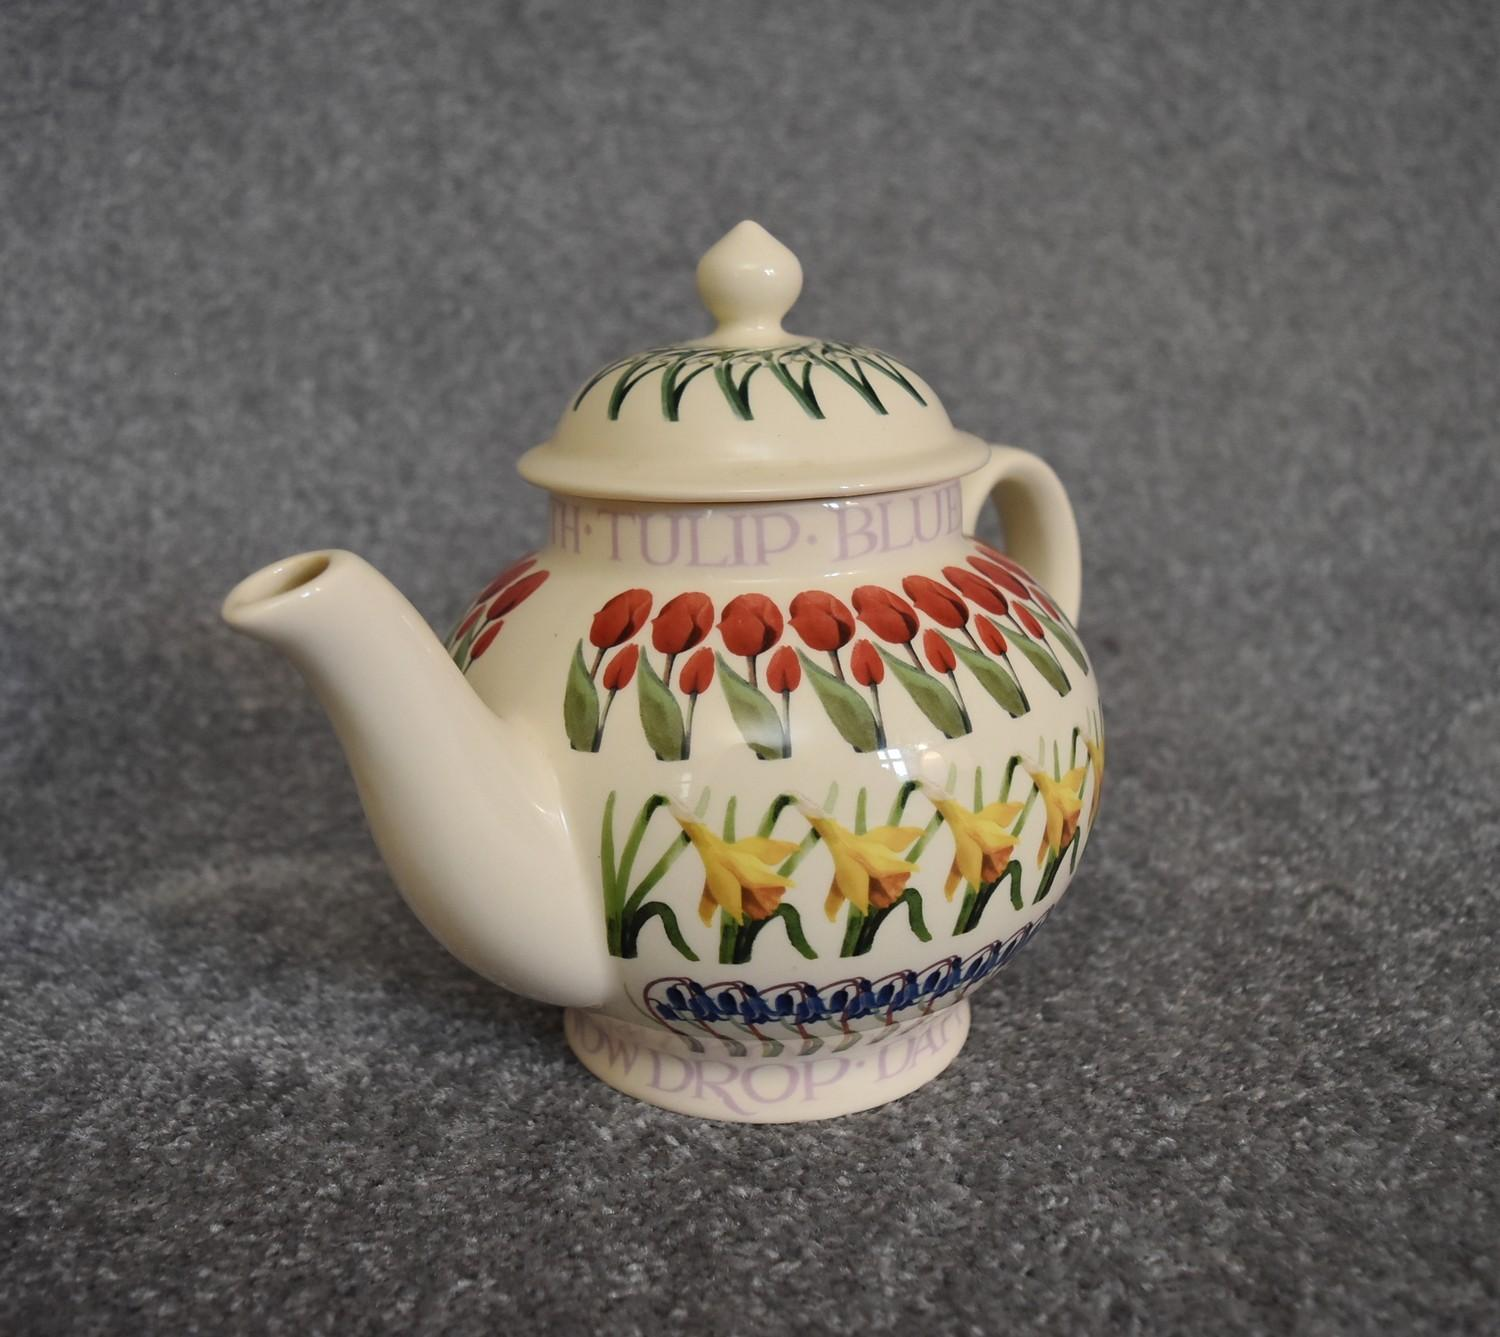 Lot 1 - A 20th Century globular form teapot with floral design, by Emma Bridgwater. H22cm